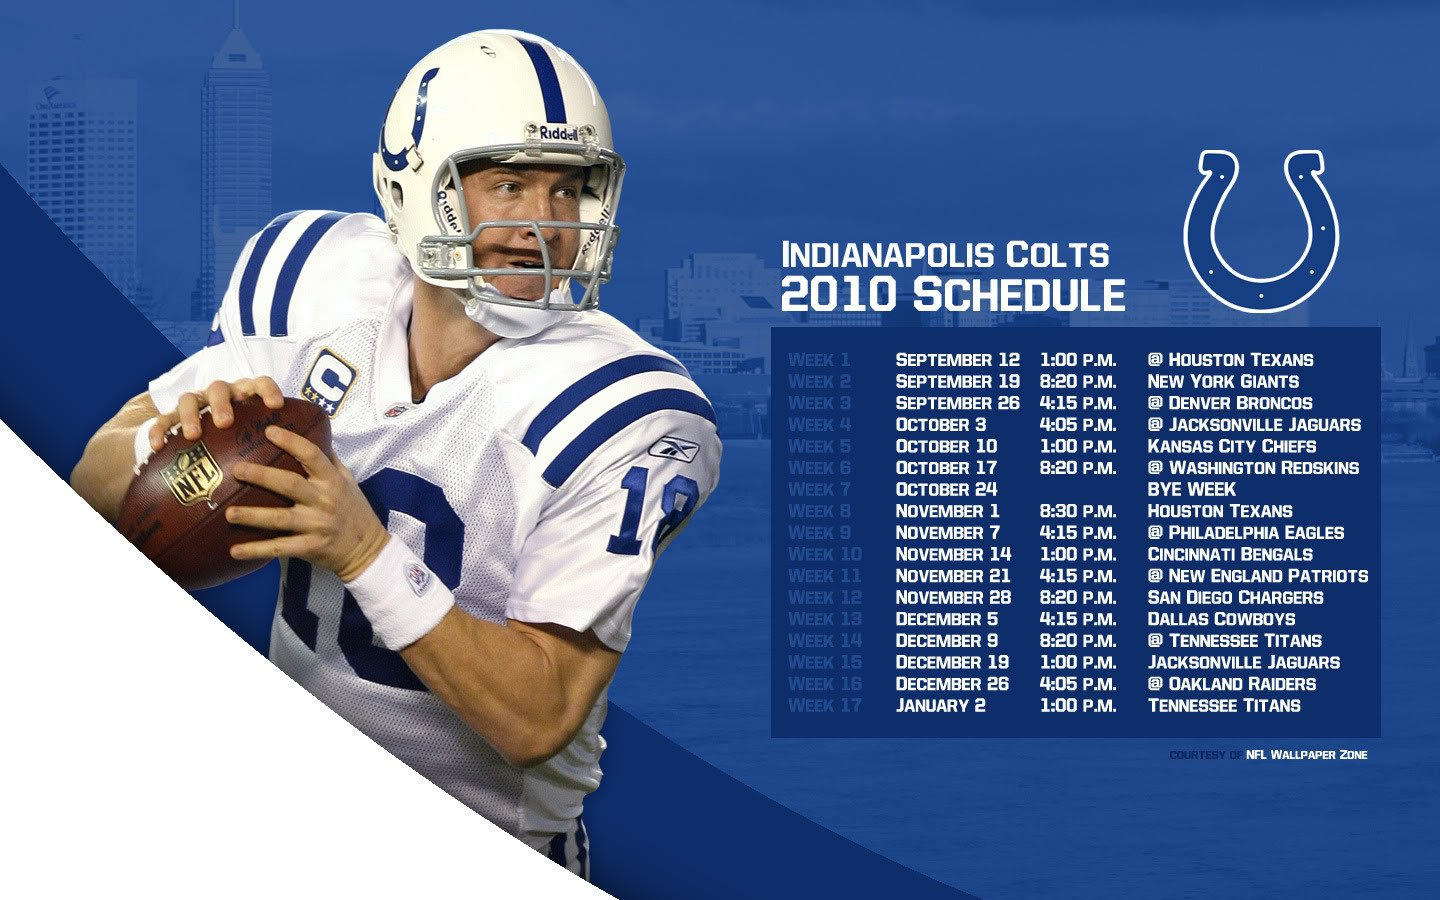 NFL Wallpaper Zone Indy Colts 2010 Schedule Wallpaper   Peyton 1440x900